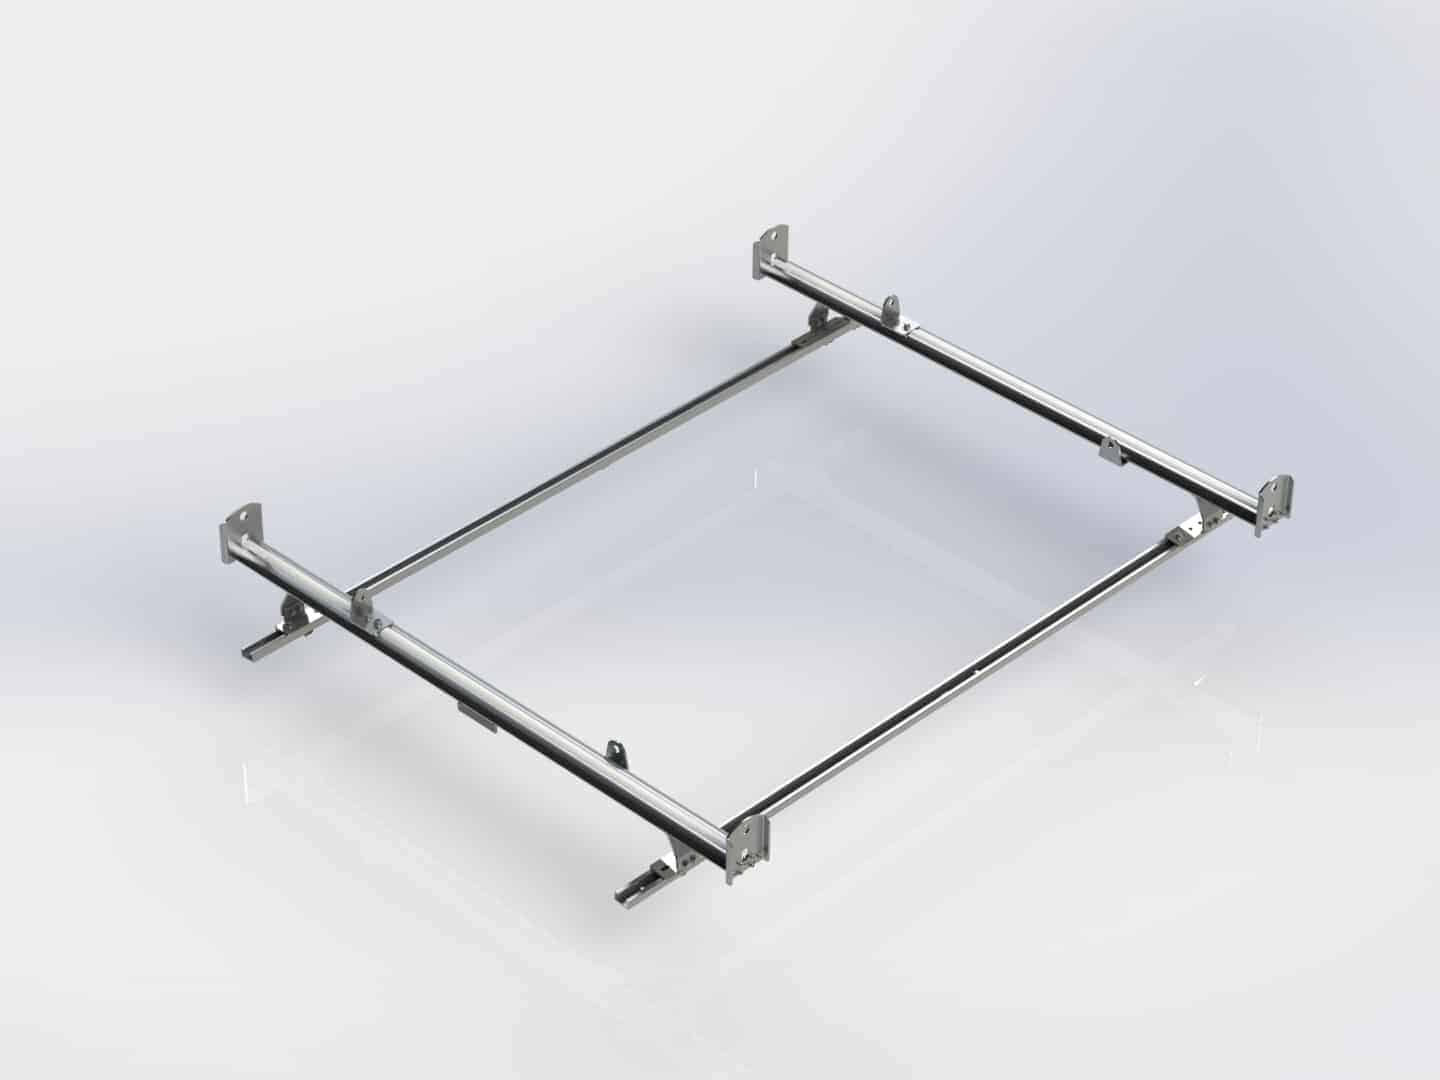 Cargo Rack For Vans 2 Bar System Ram Promaster City